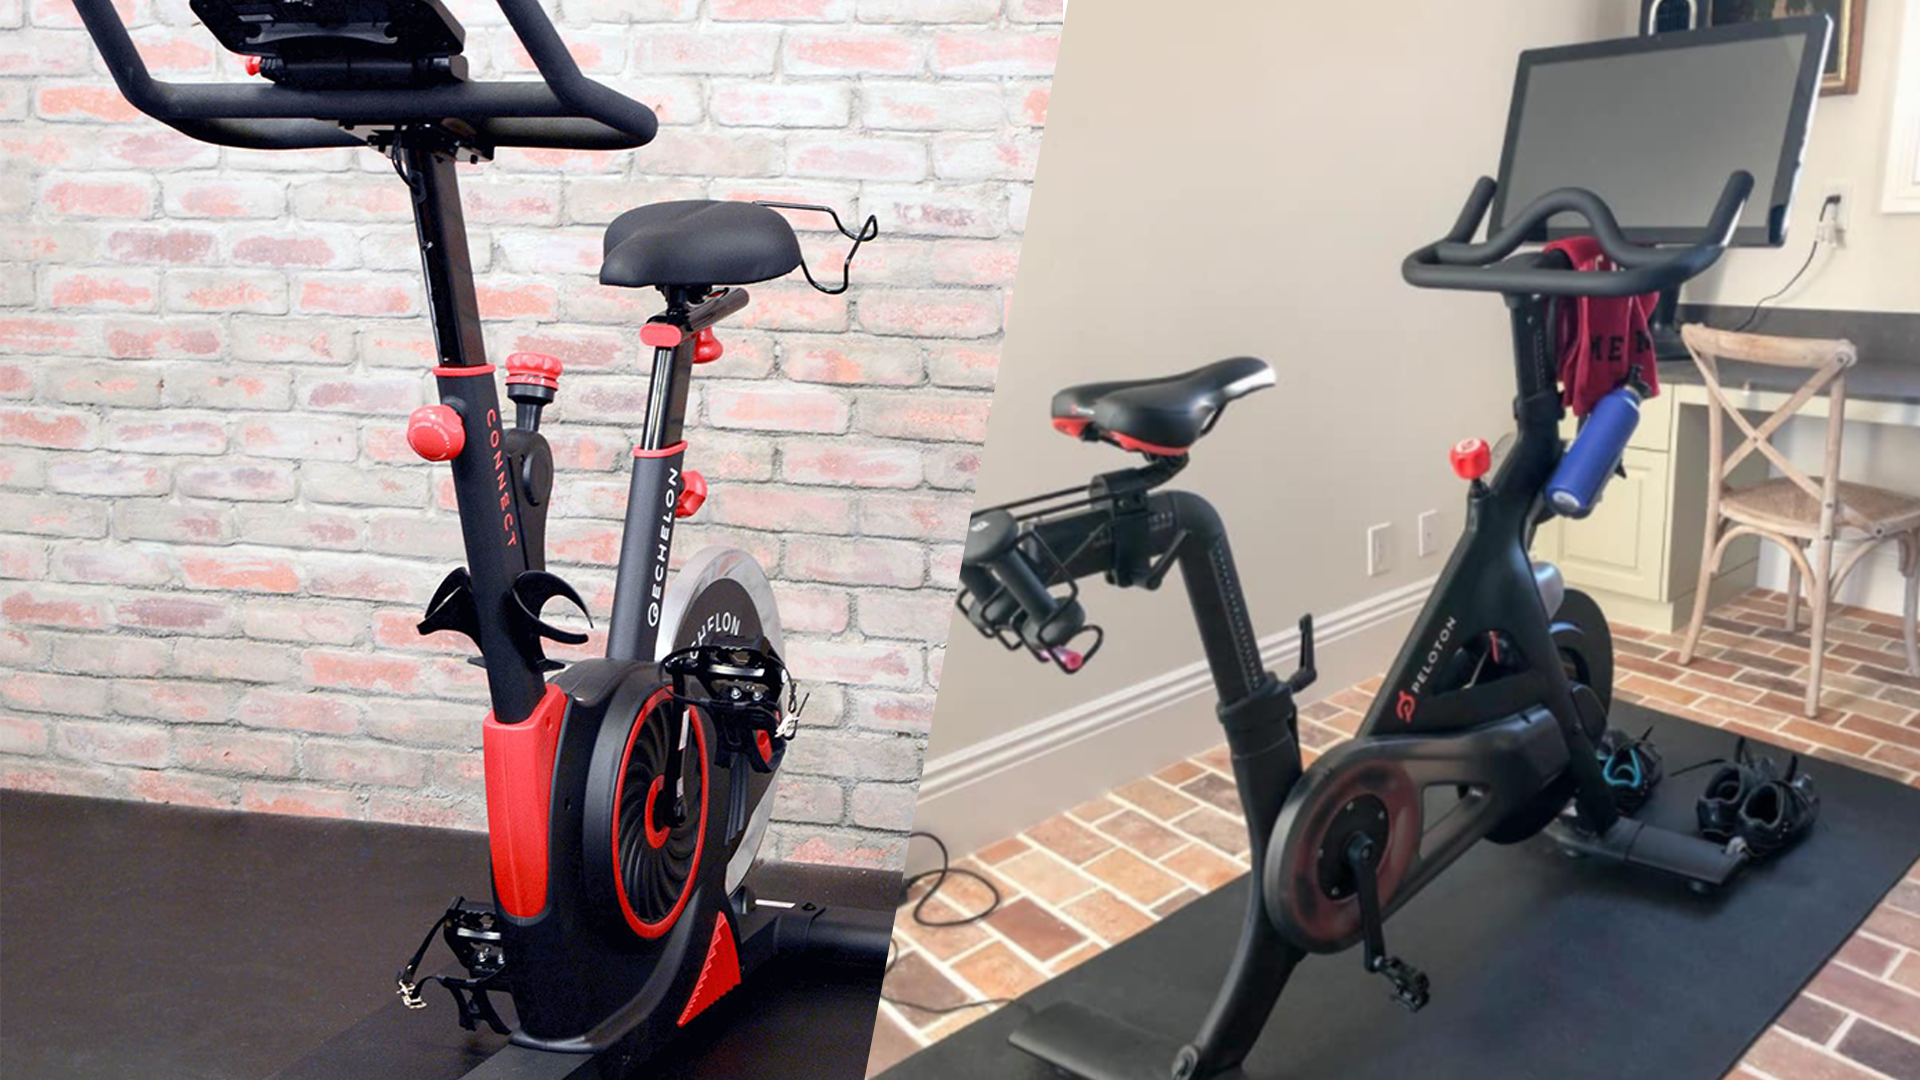 Peloton vs. Echelon EX3, Which Is The Better Bike, detailed comparison